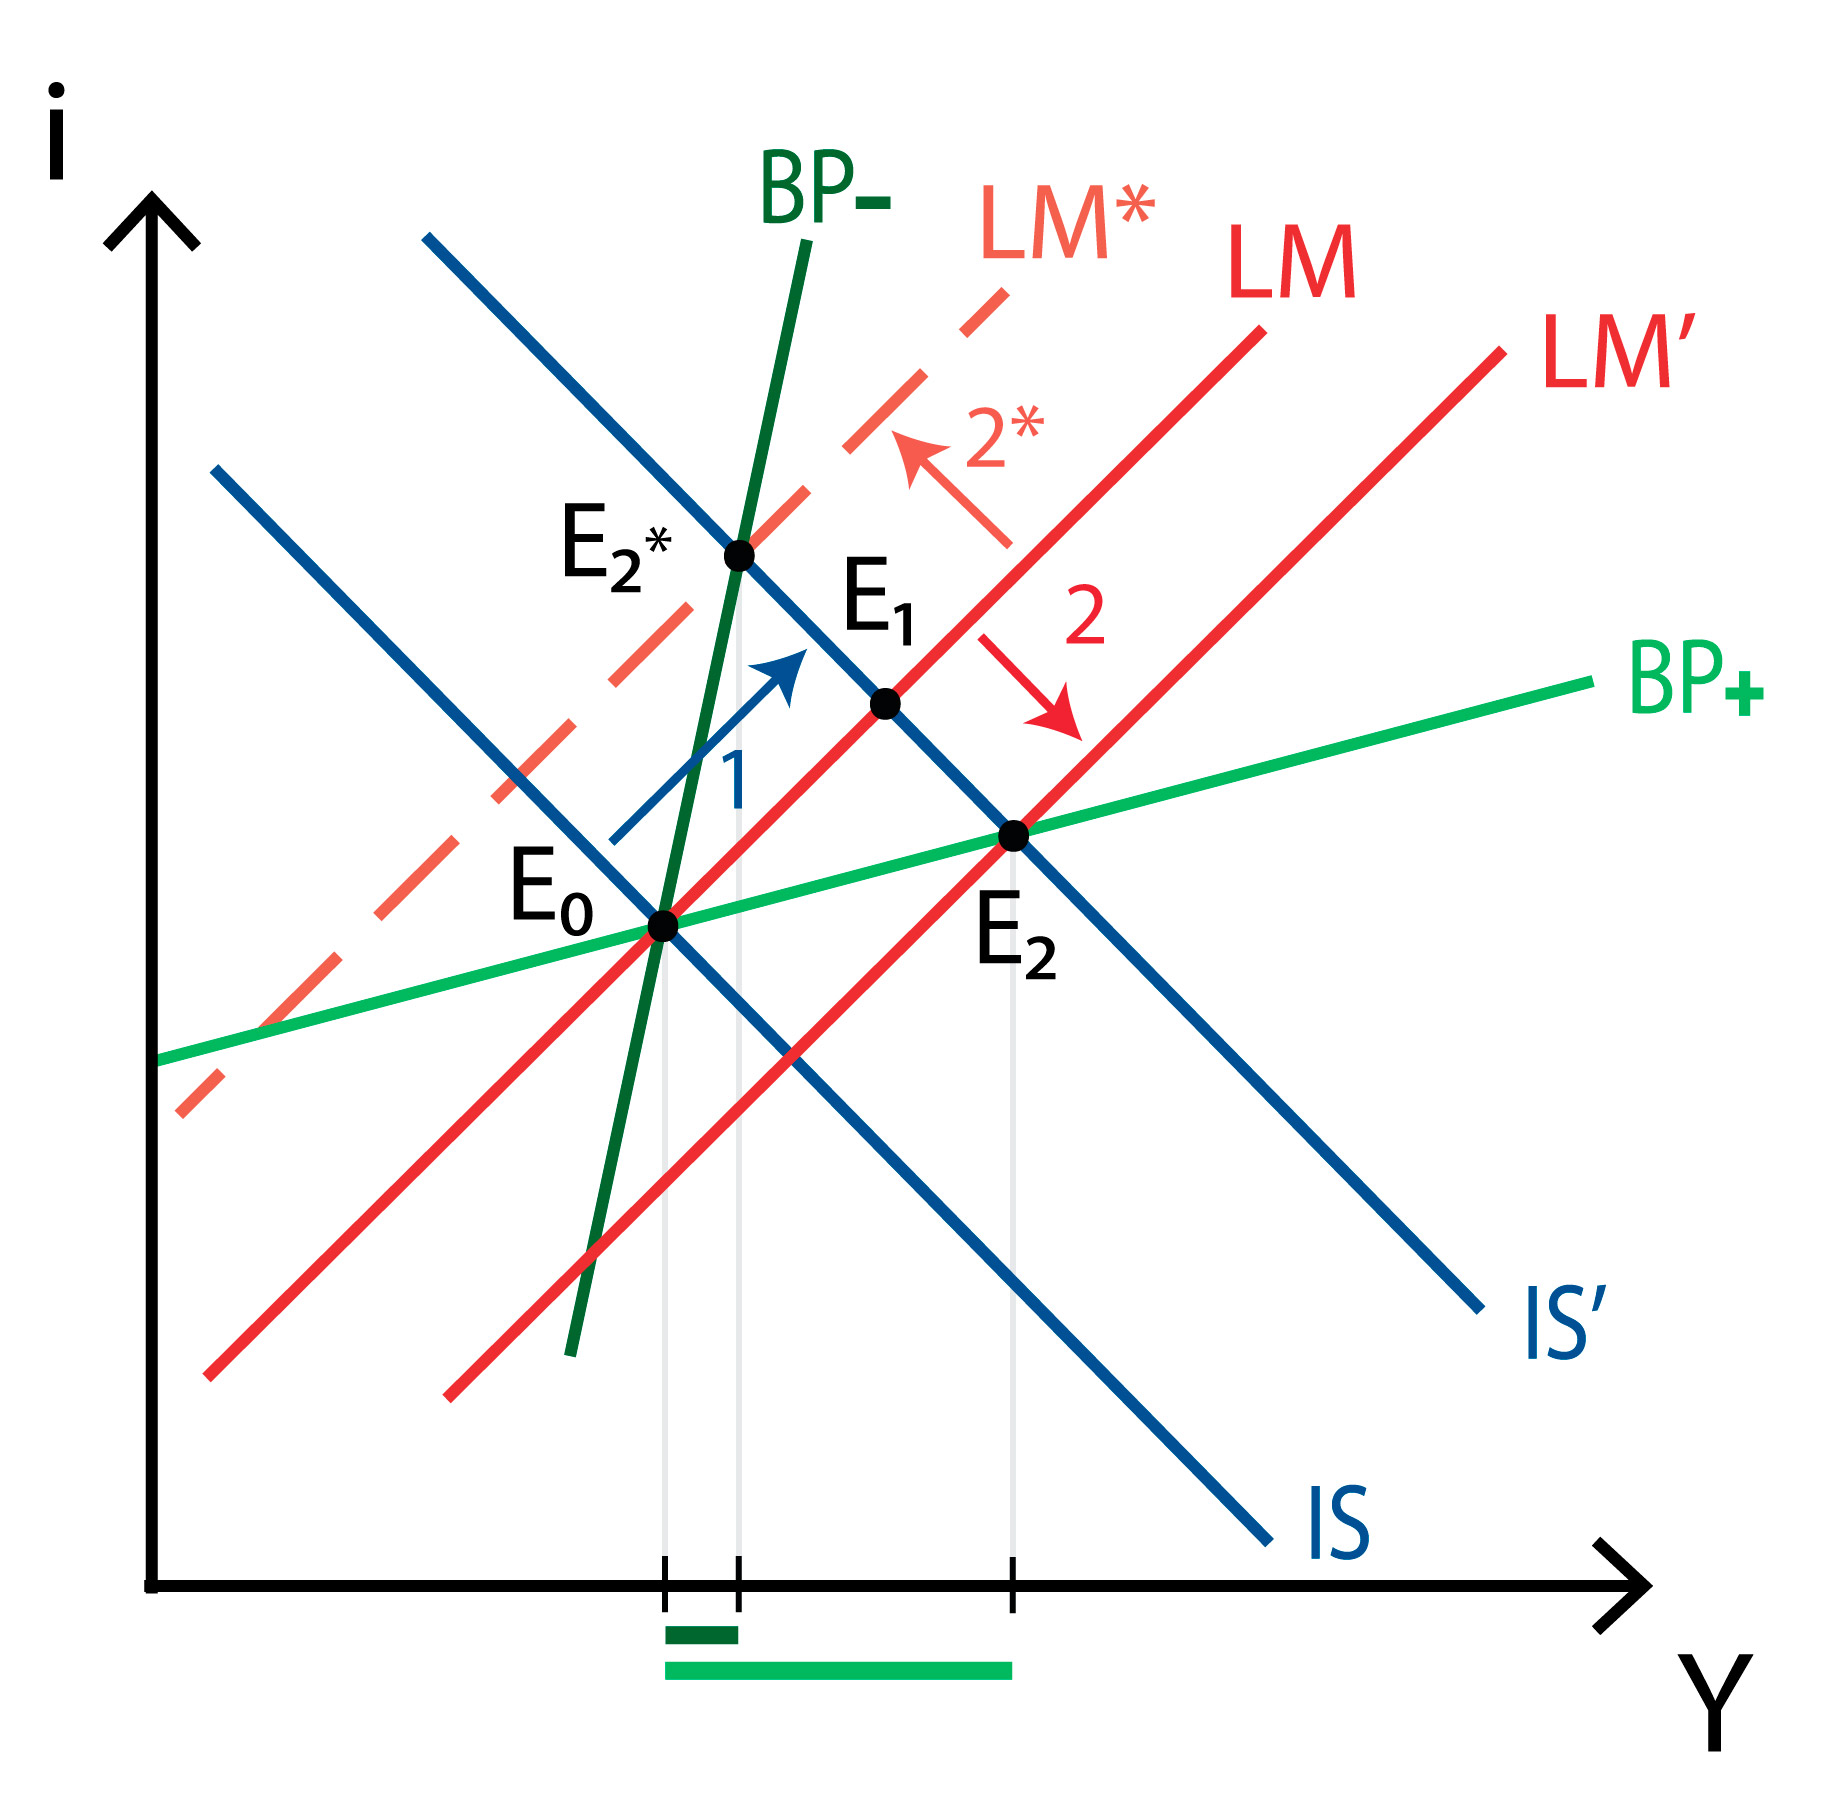 IS-LM-BP model - Imperfect capital mobility - Fixed exchange - Fiscal policy